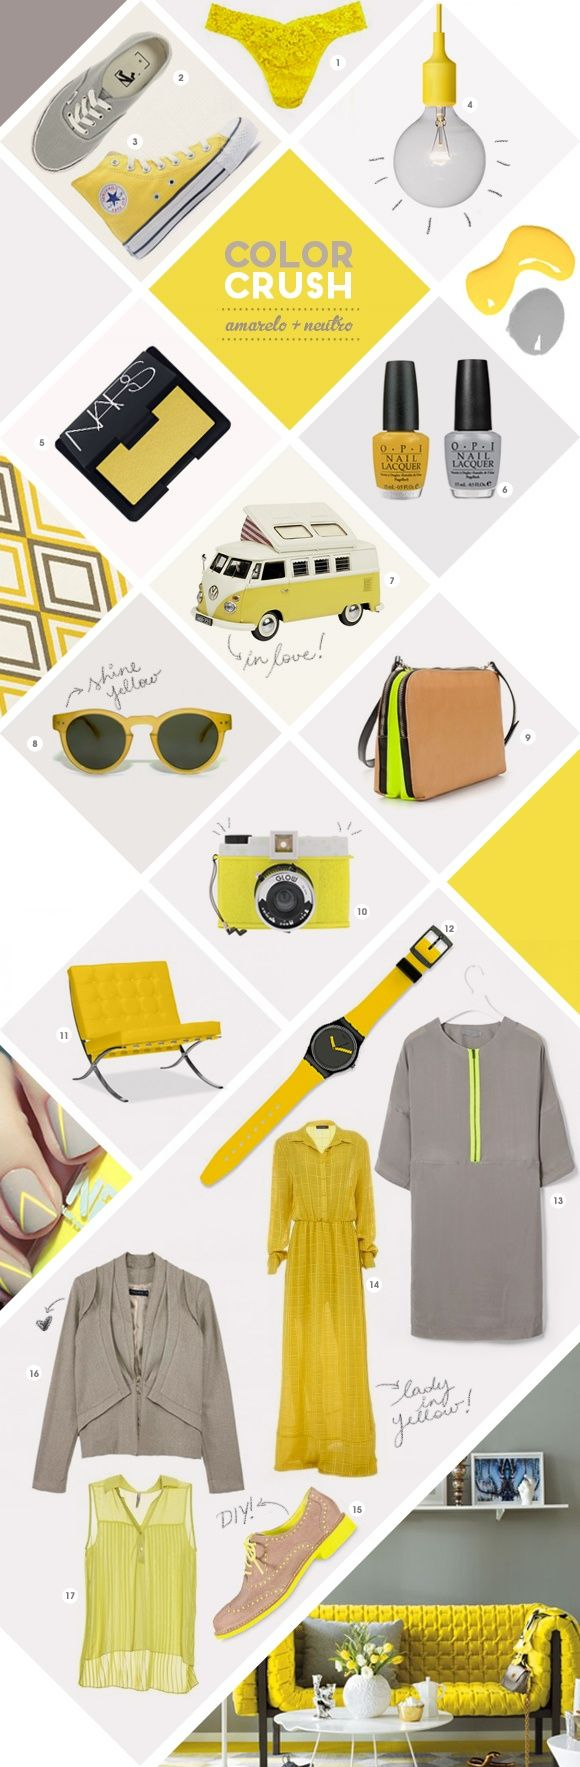 This example uses a uniform color- yellow. This can be a good concept for some of the spreads as it is visually appealing.